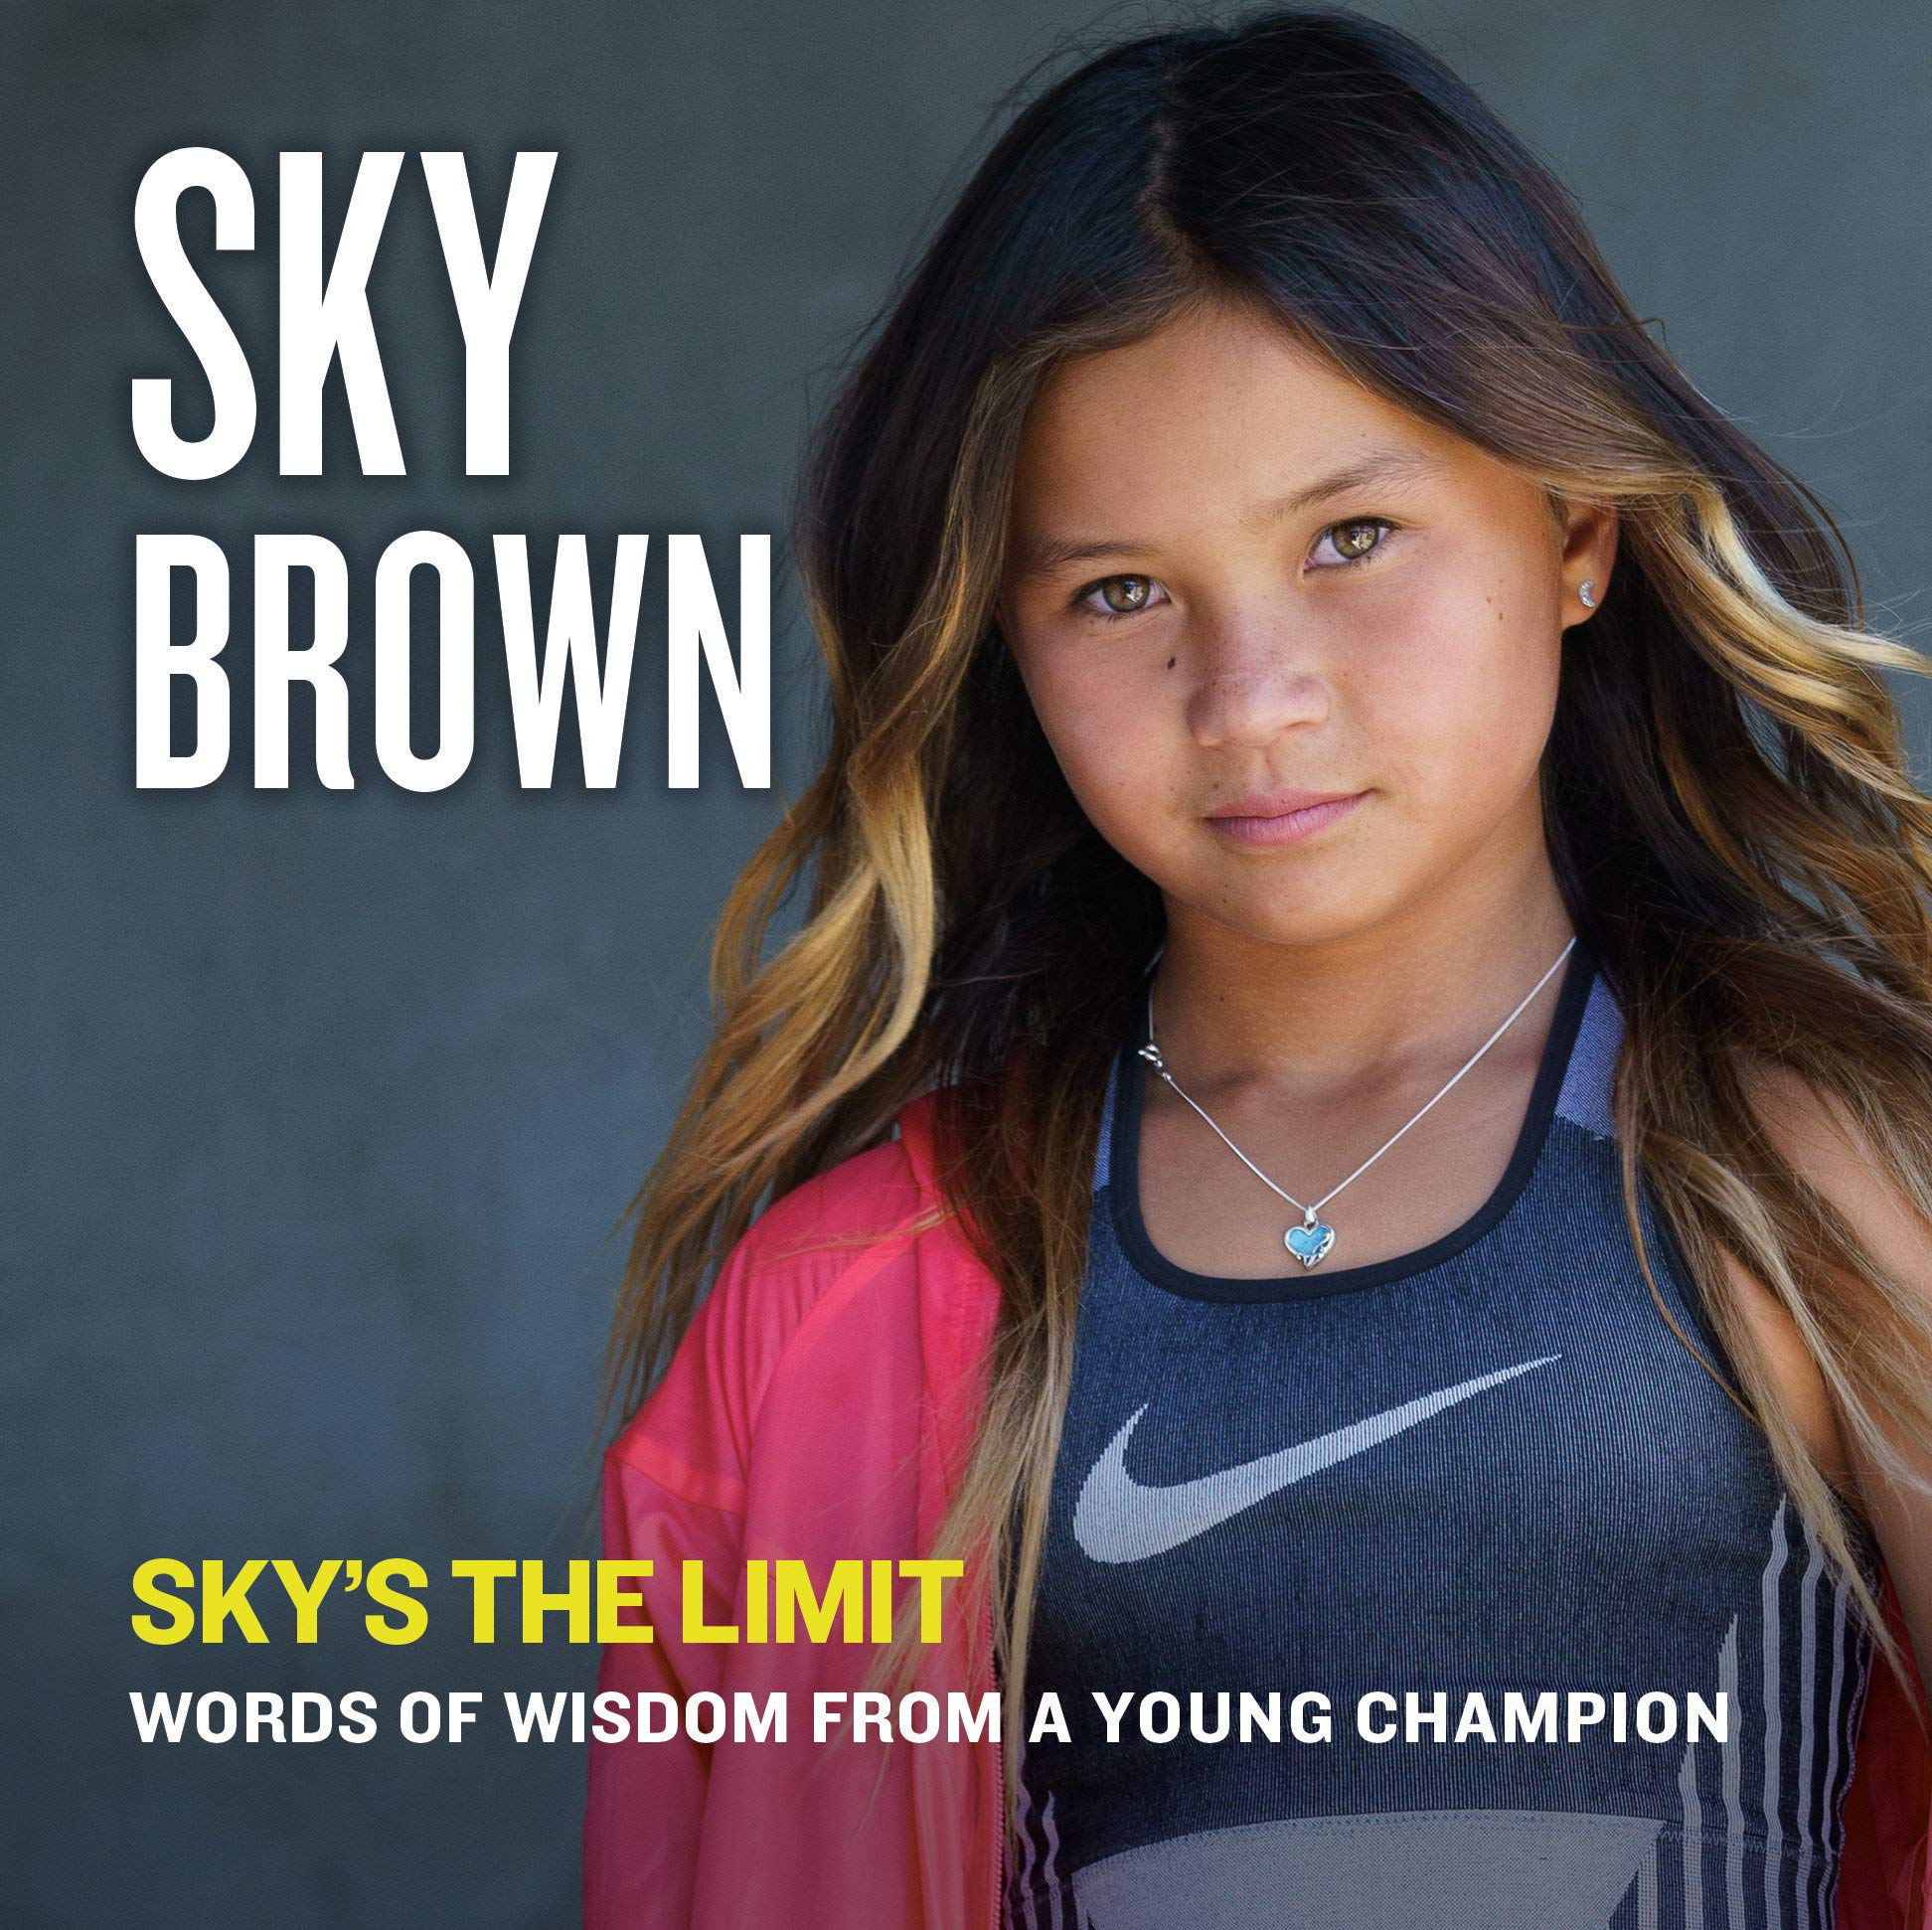 Sky's the Limit: Words of Wisdom from a Young Champion: Brown, Sky:  9780593096970: Amazon.com: Books